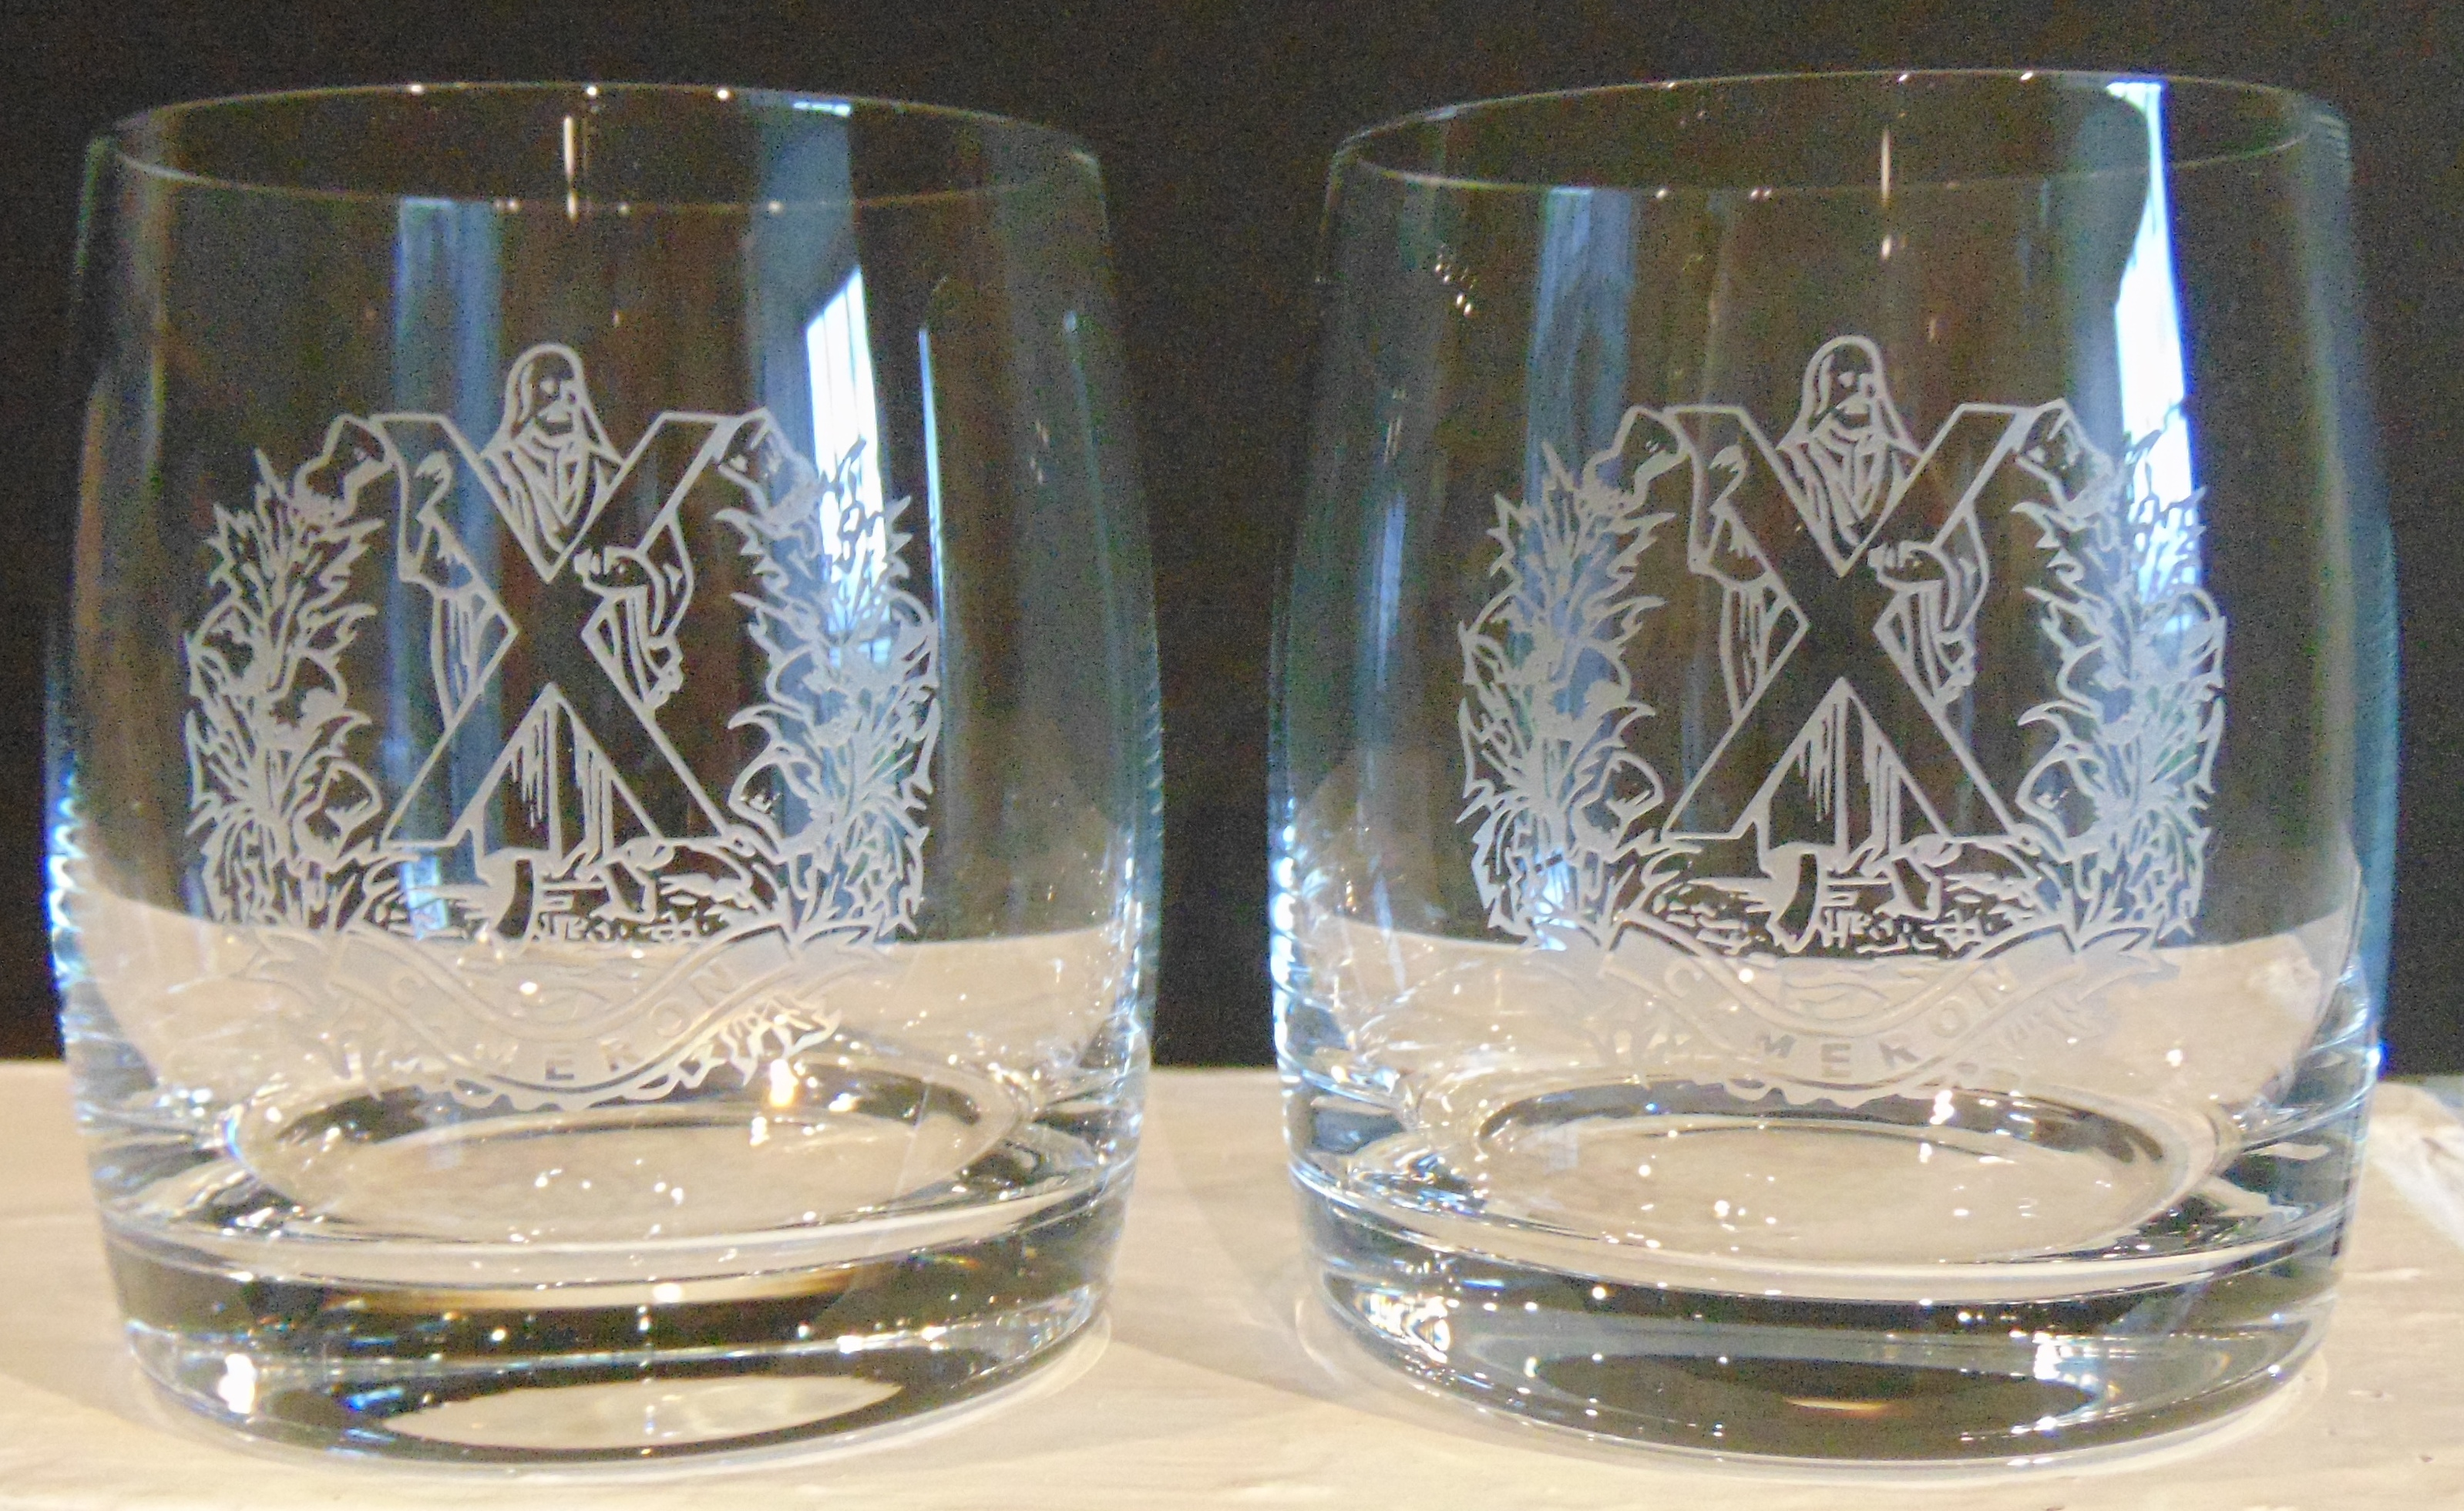 Whisky Glasses Pair - The Queens Own Cameron Highlanders